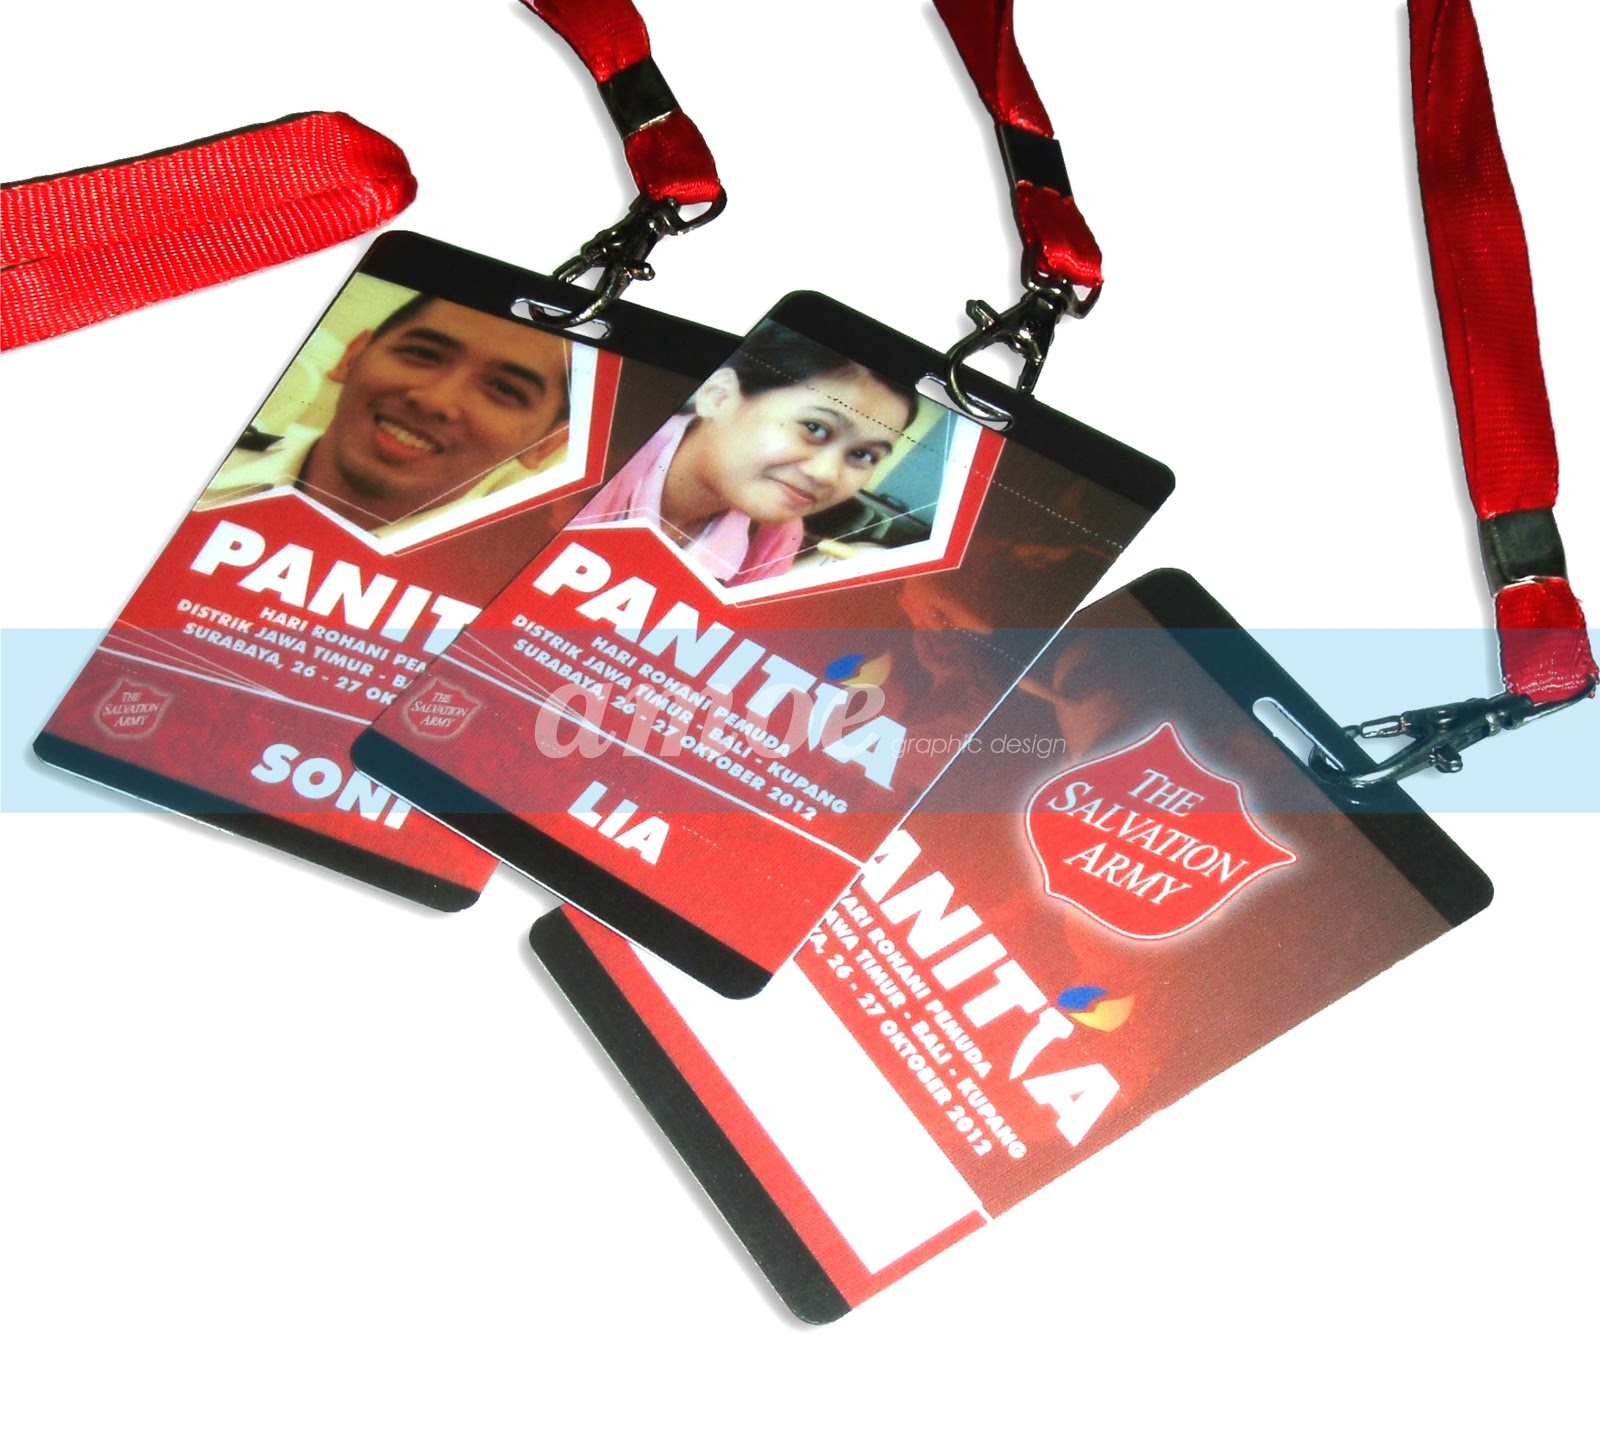 amoe graphic design: name tag event